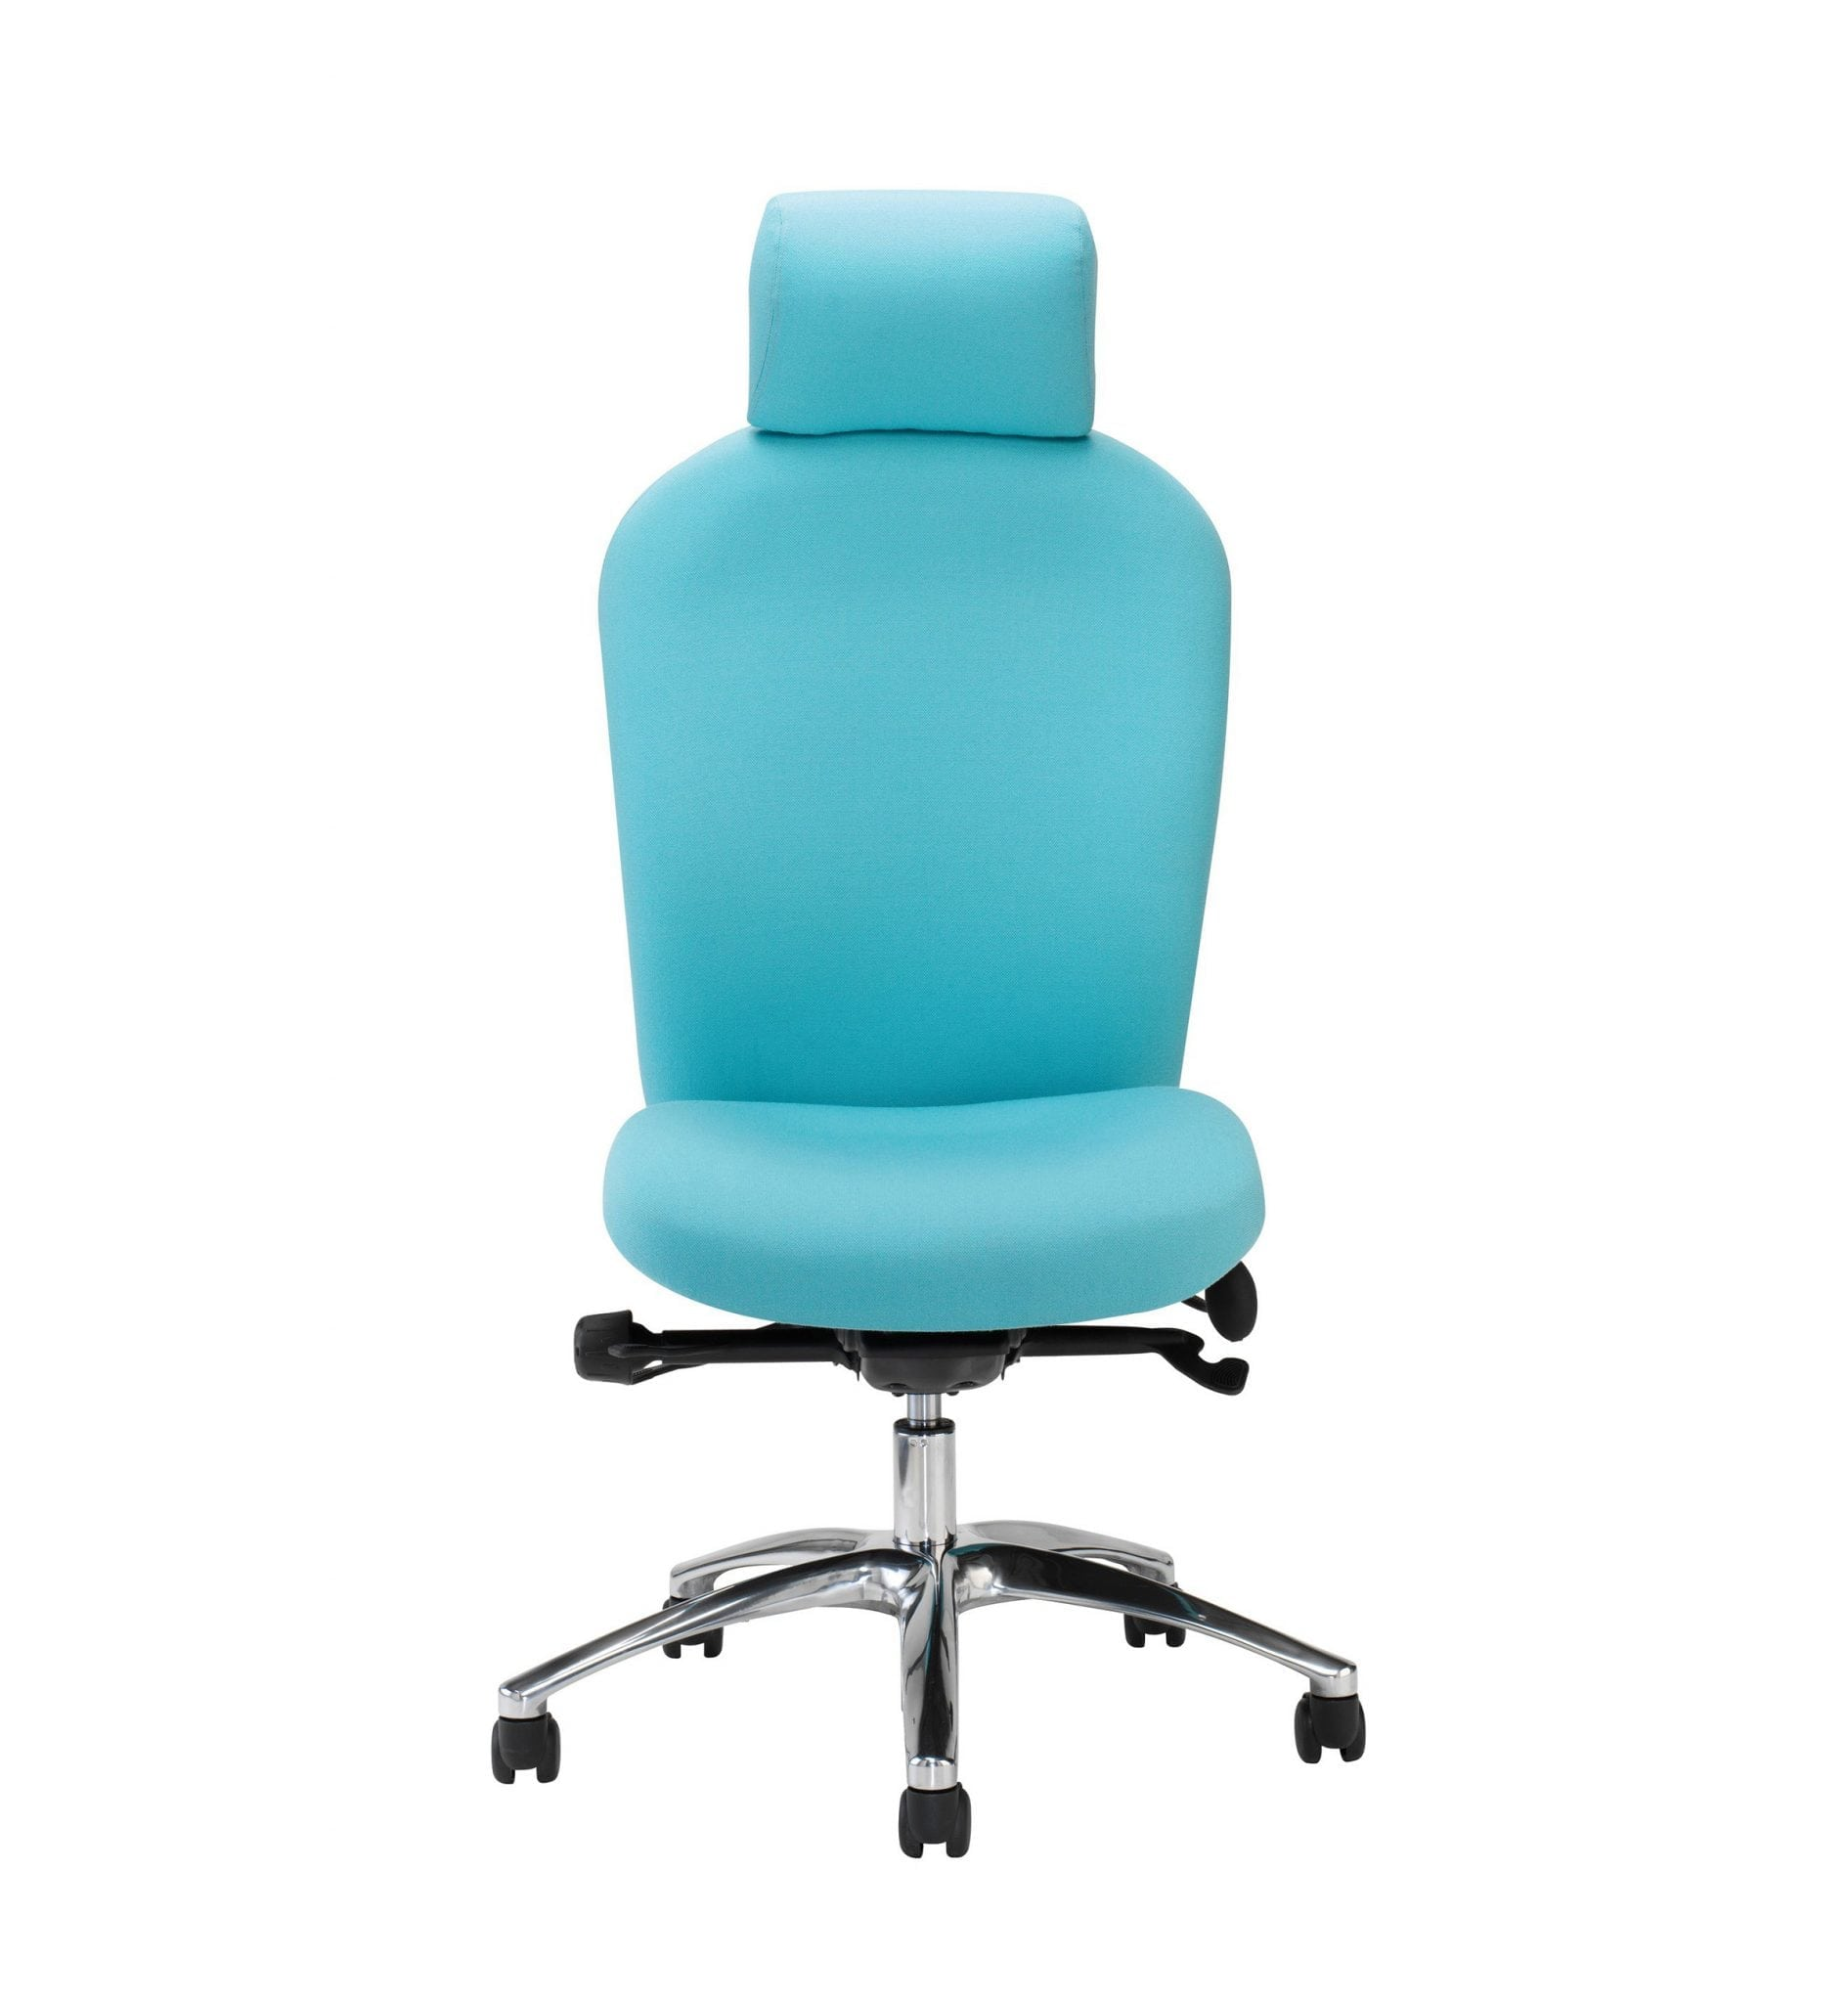 upholstered posture chair revolving online shopping india p83 summit chairs